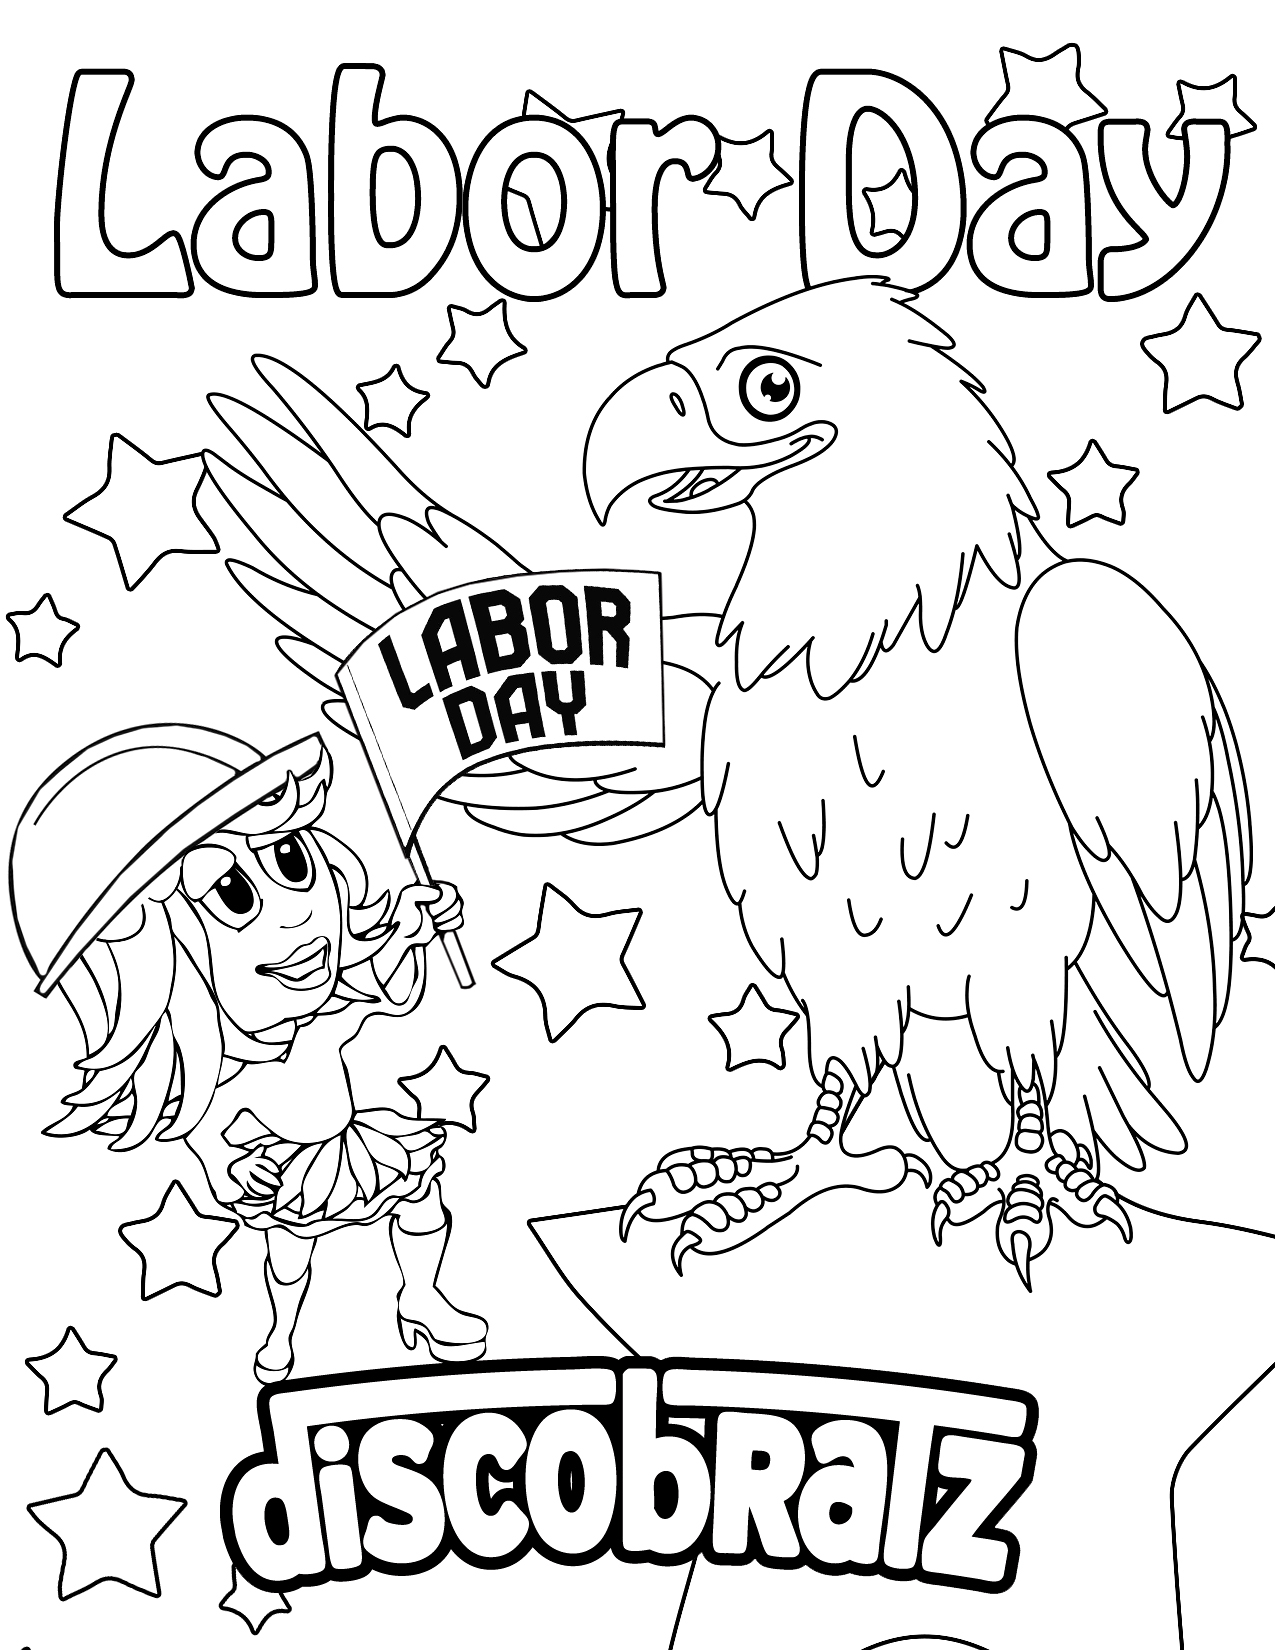 free printable labor day pictures labor day coloring pages kidsuki labor free printable pictures day